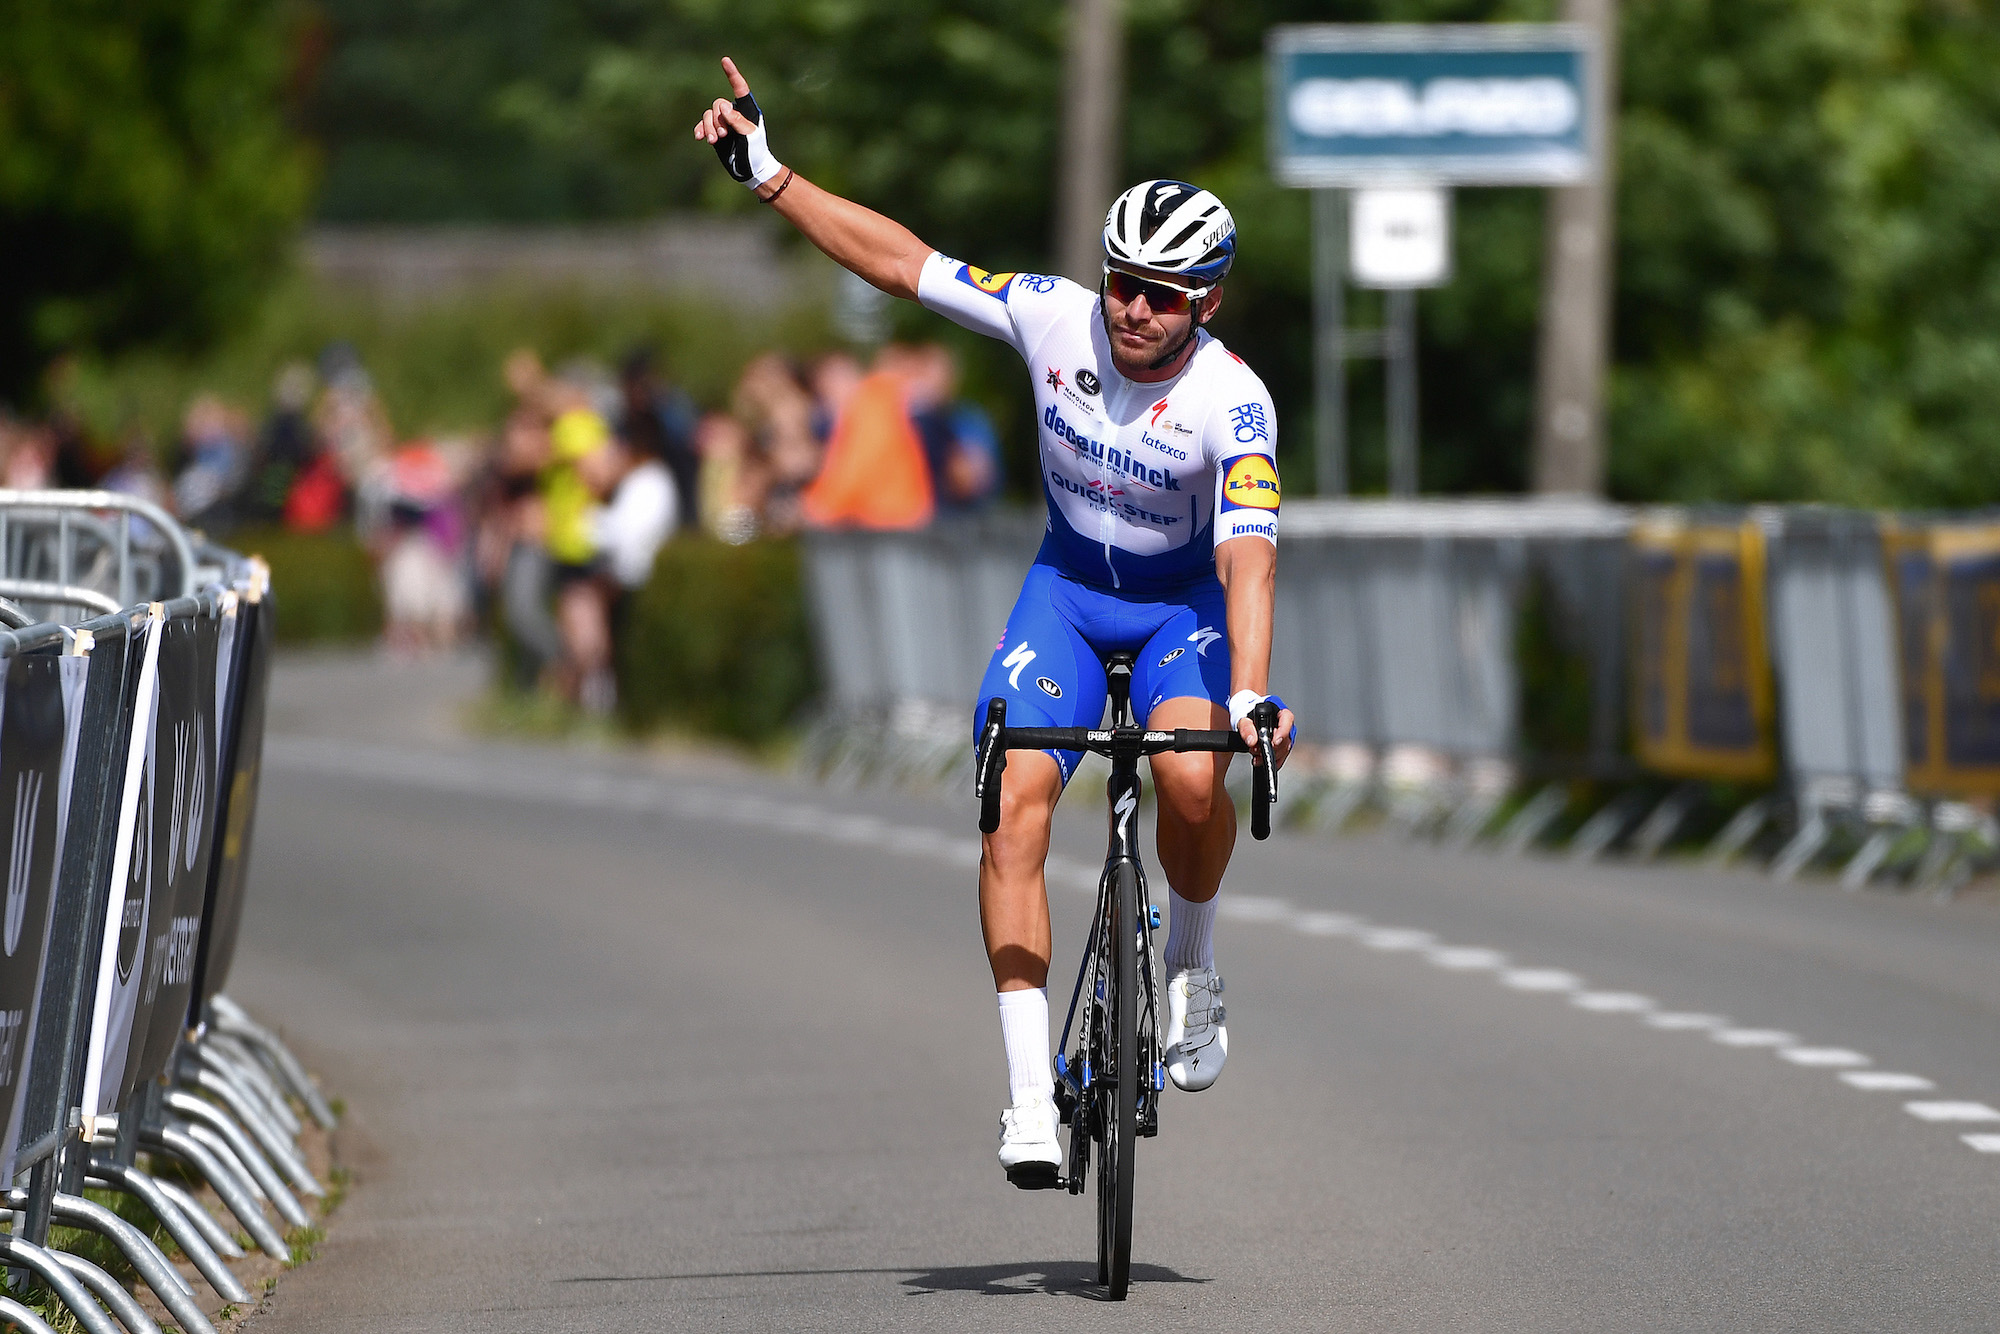 'The need for competition is enormous' – Quick-Step take the win as racing returns in Belgium - Cycling Weekly